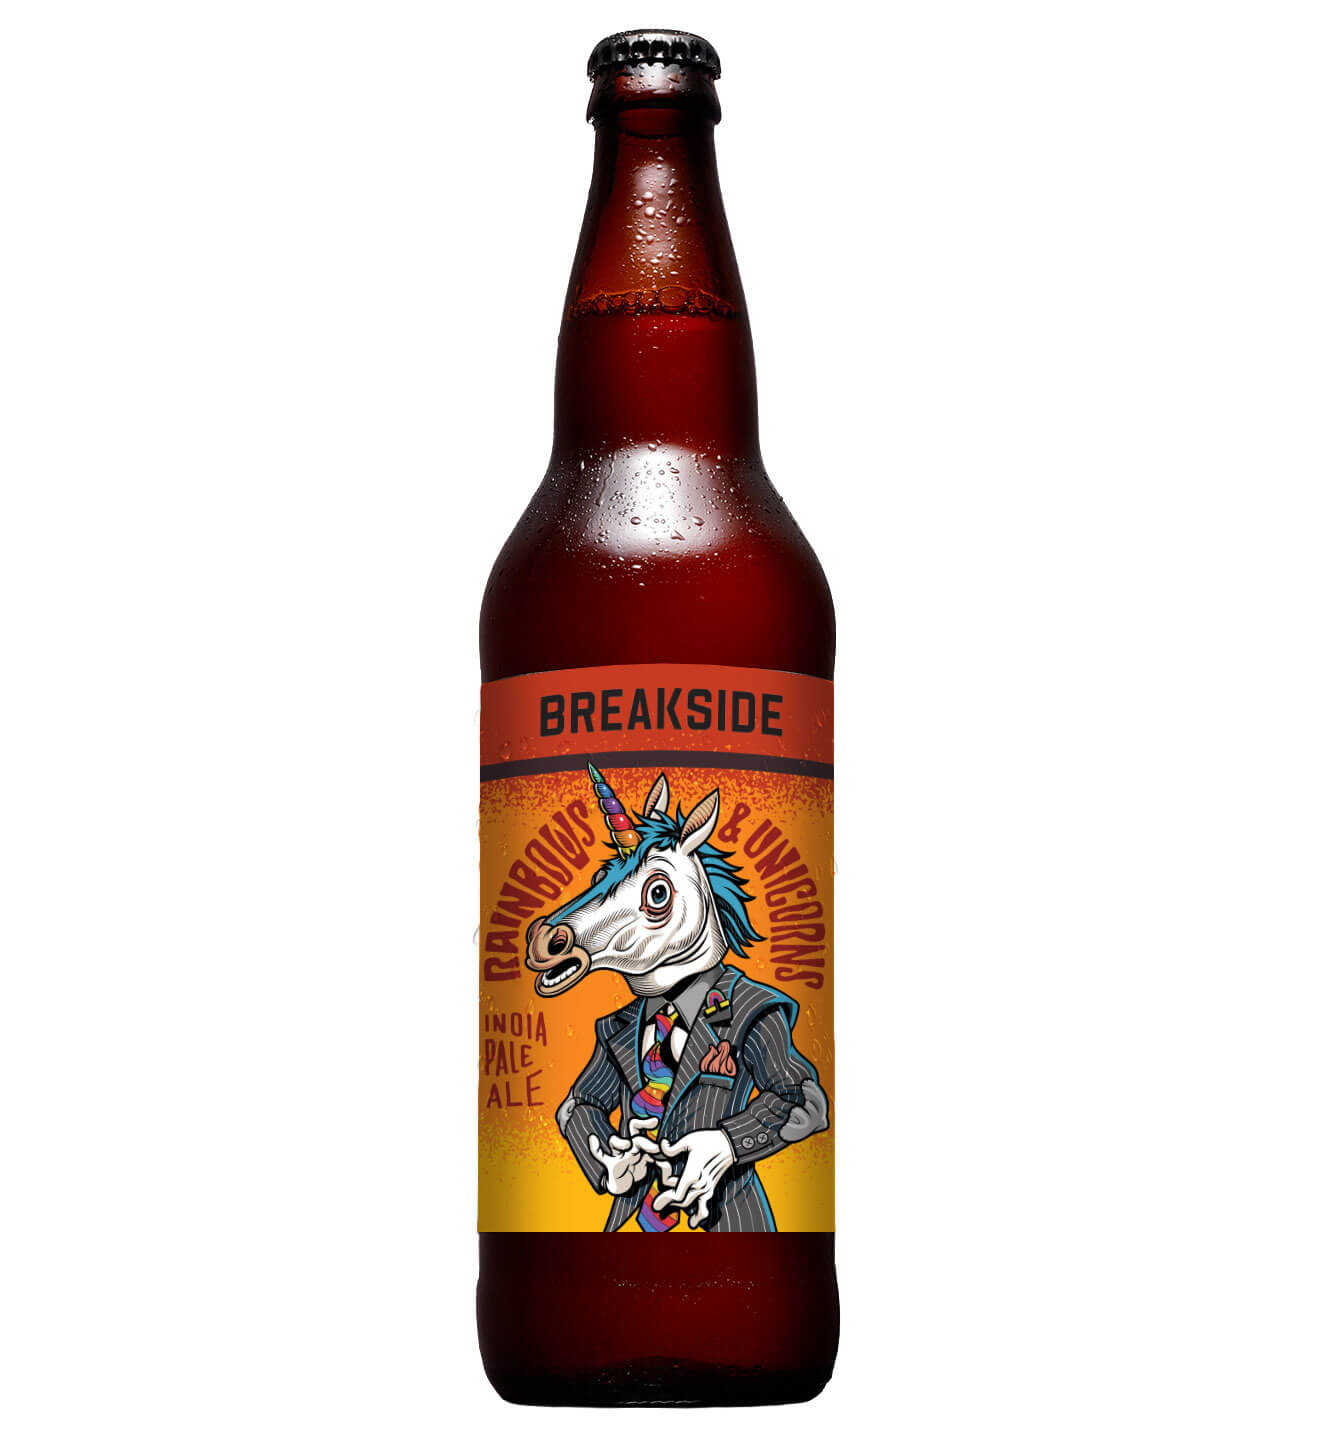 Rainbows & Unicorns IPA, bottle on white